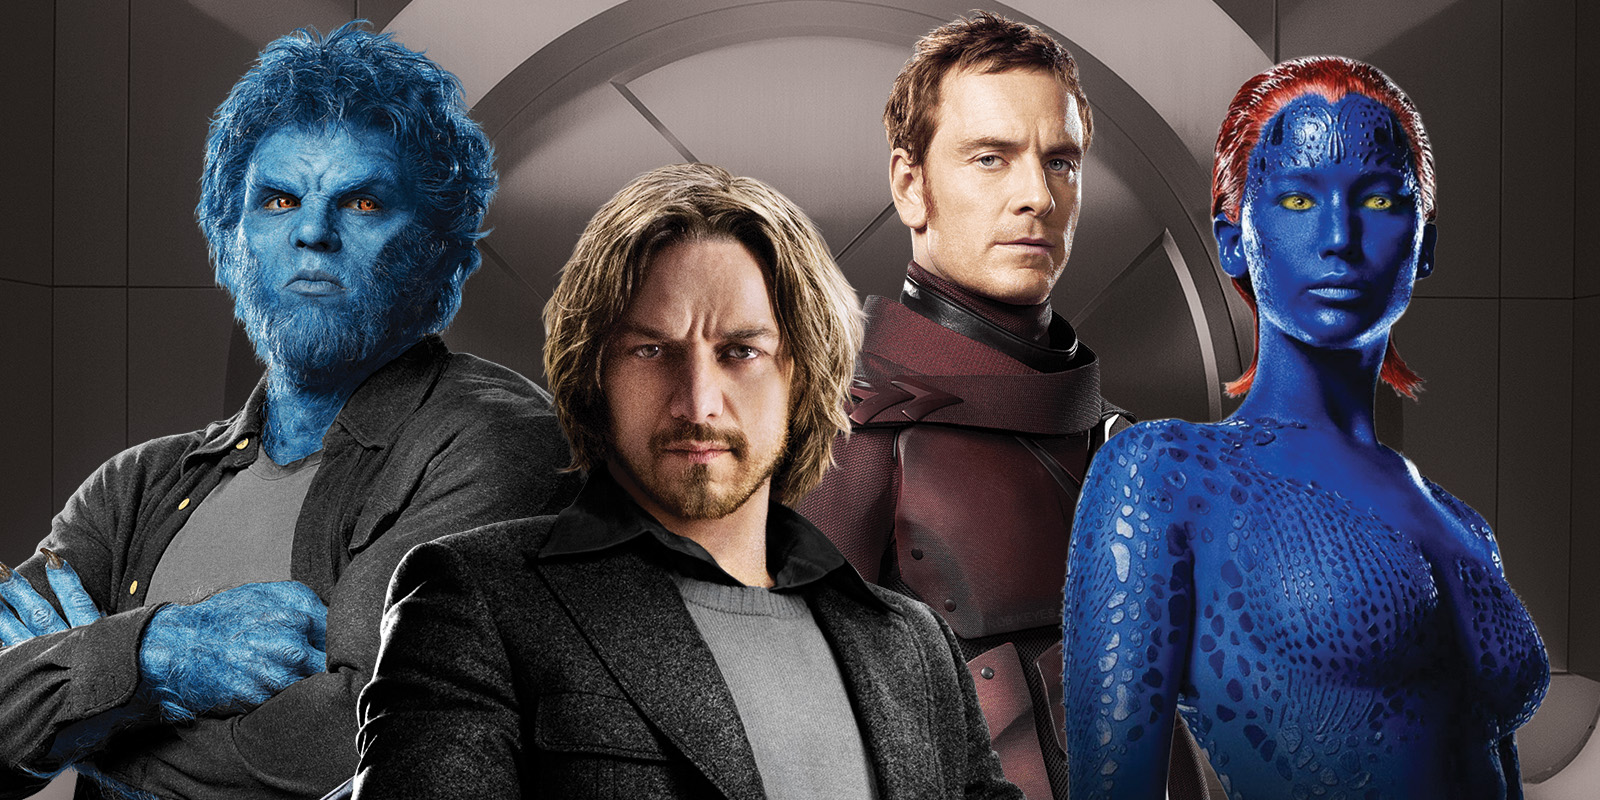 X-Men-First-Class-Apocalypse-Trilogy-Main-Characters